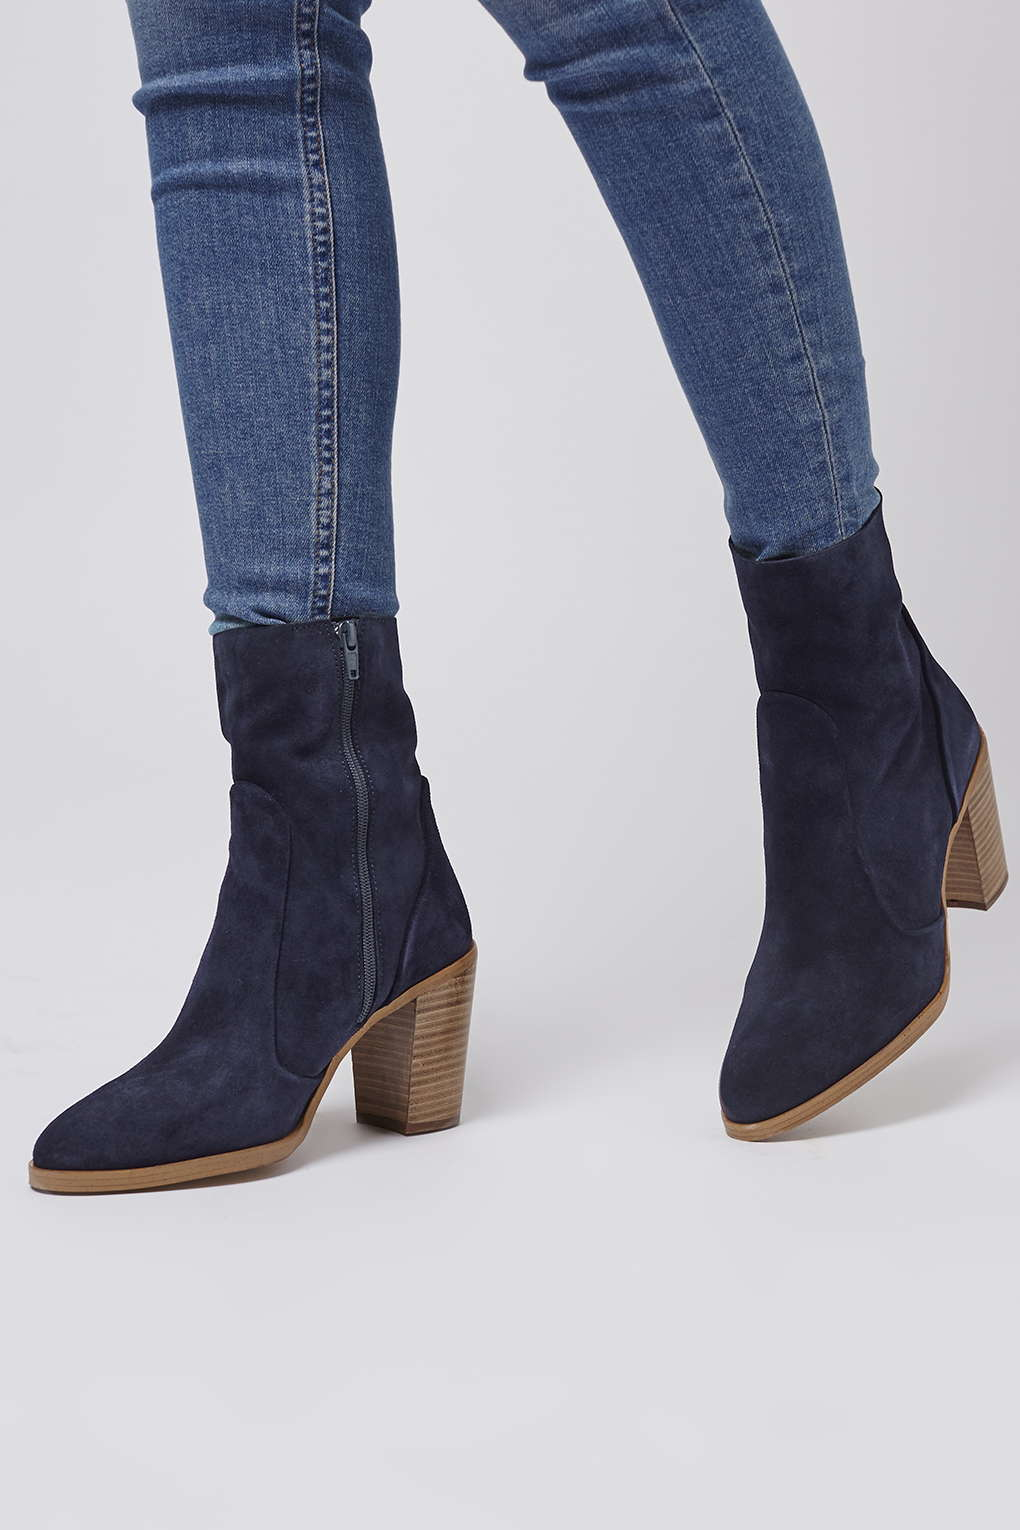 29952053b25c Topshop Magnificent Suede Sock Boots in Blue